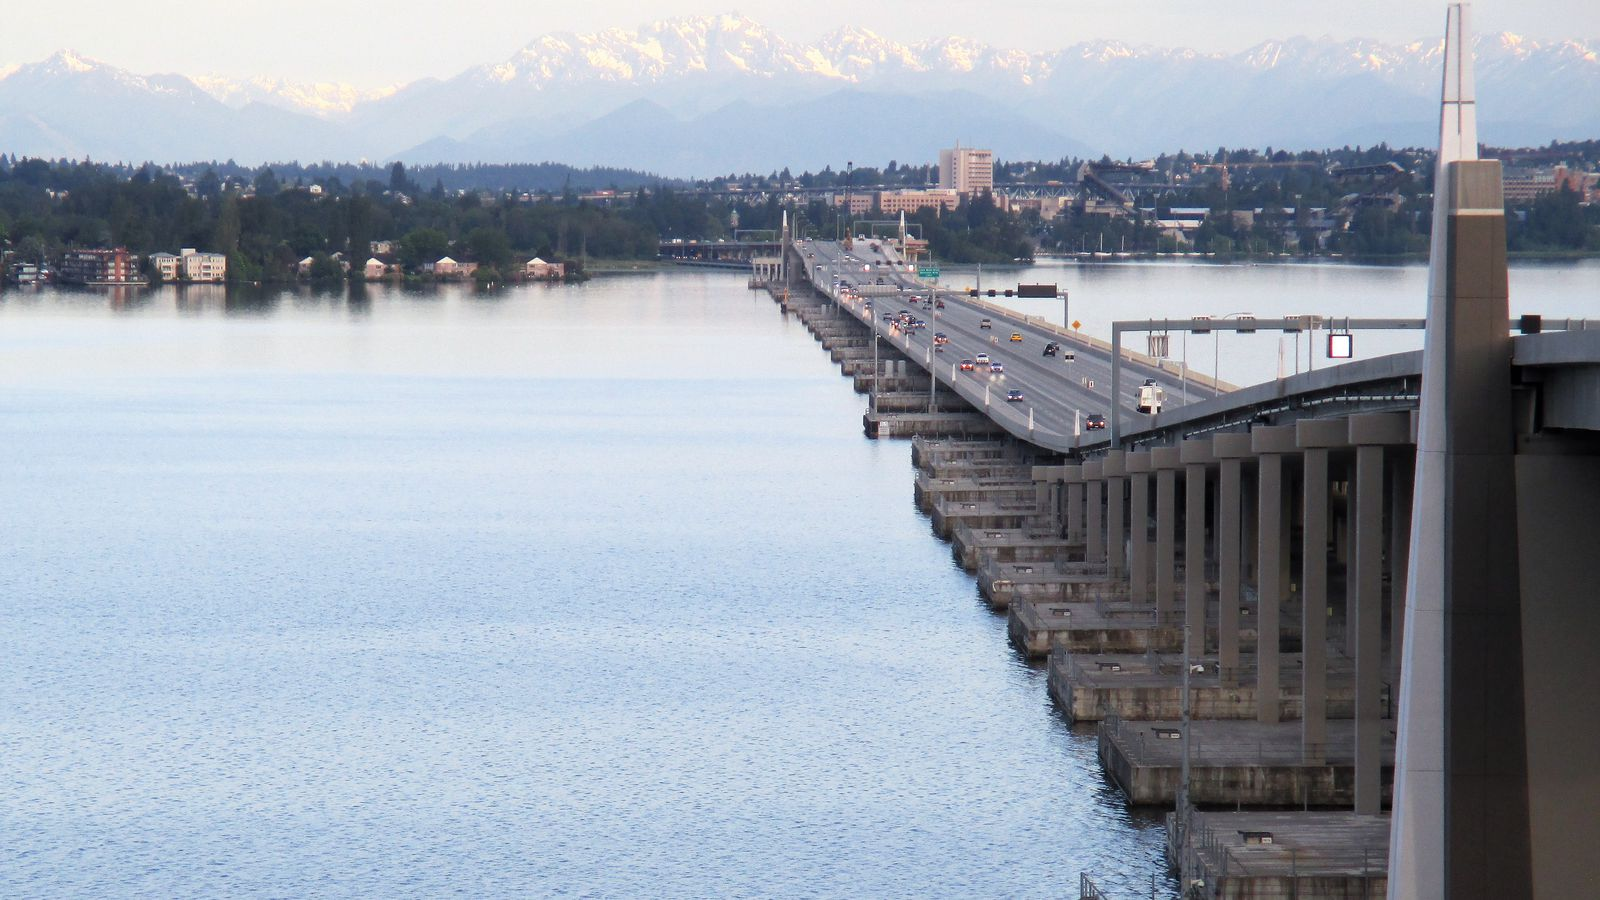 seattle weekend traffic the 520 bridge will be closed curbed seattle. Black Bedroom Furniture Sets. Home Design Ideas